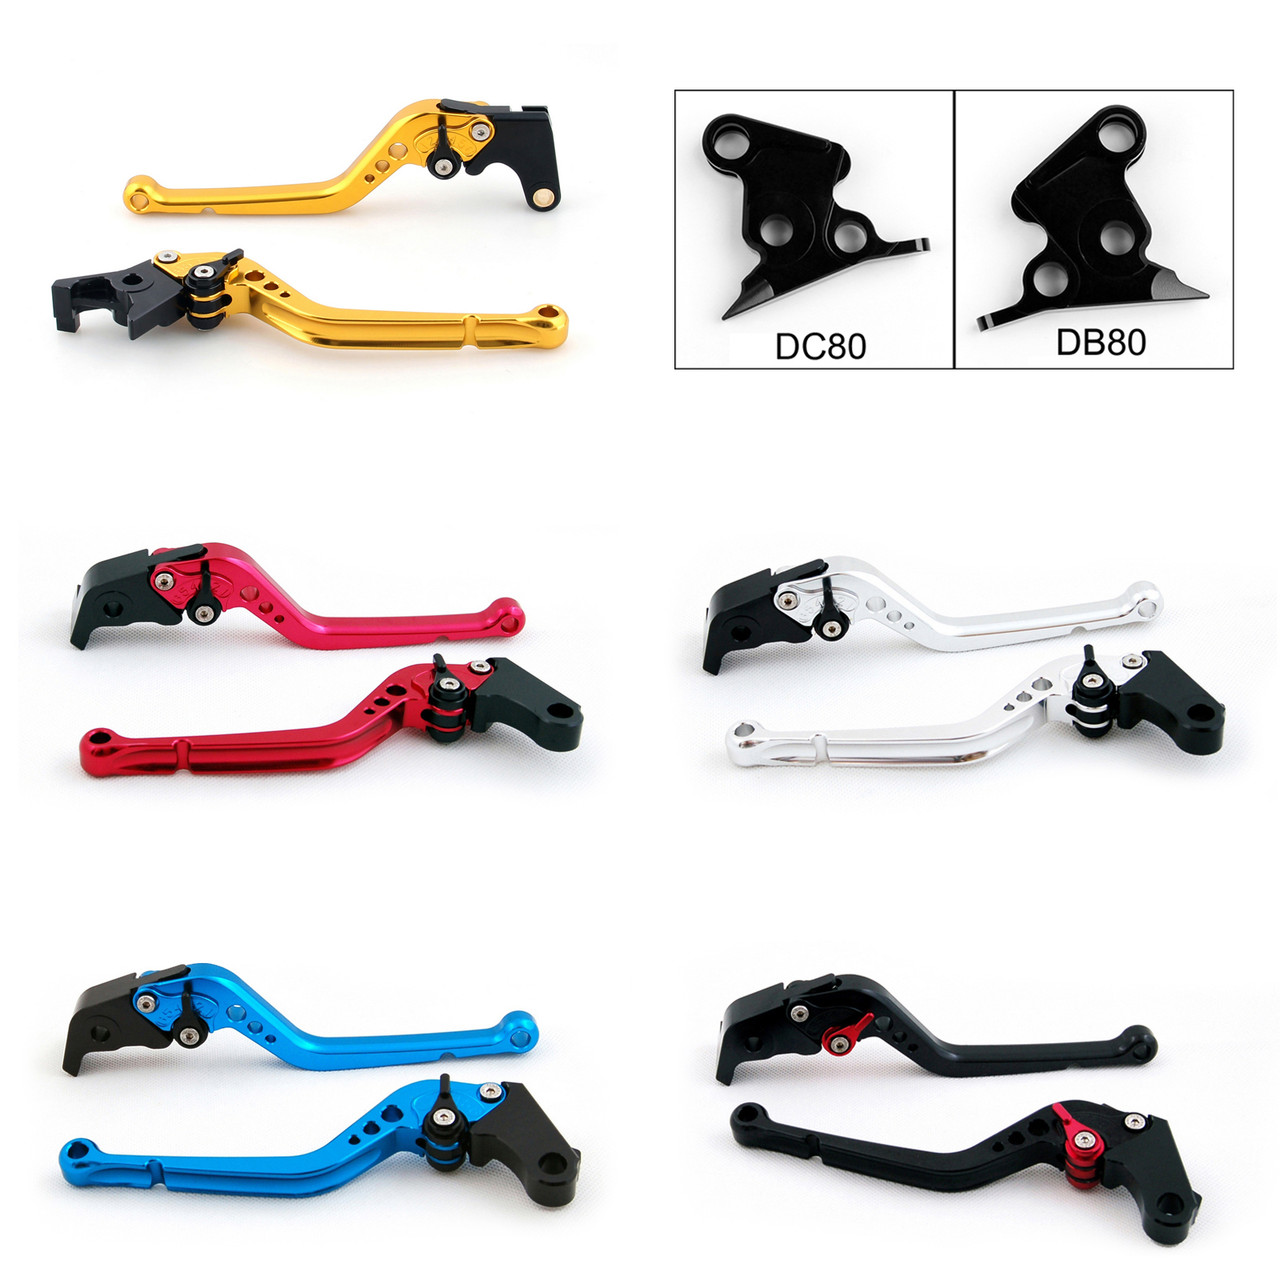 Standard Staff Length Adjustable Brake Clutch Levers Aprilia CAPANORD 1200 2014-2015 (DB-80/DC-80)